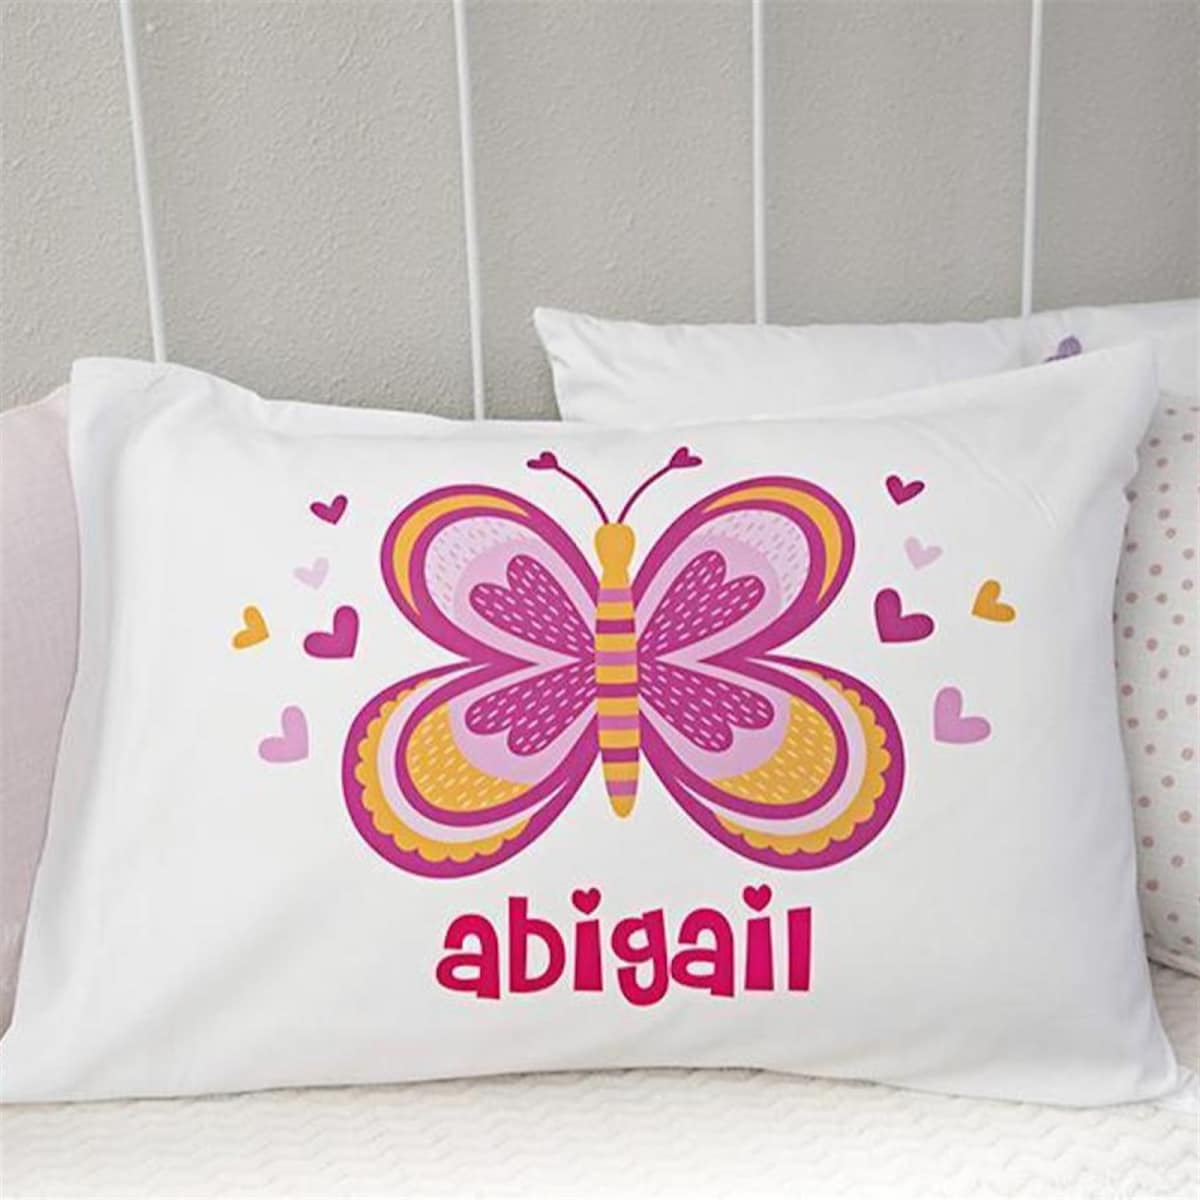 Personalized Love Pillowcases  0e33d6959